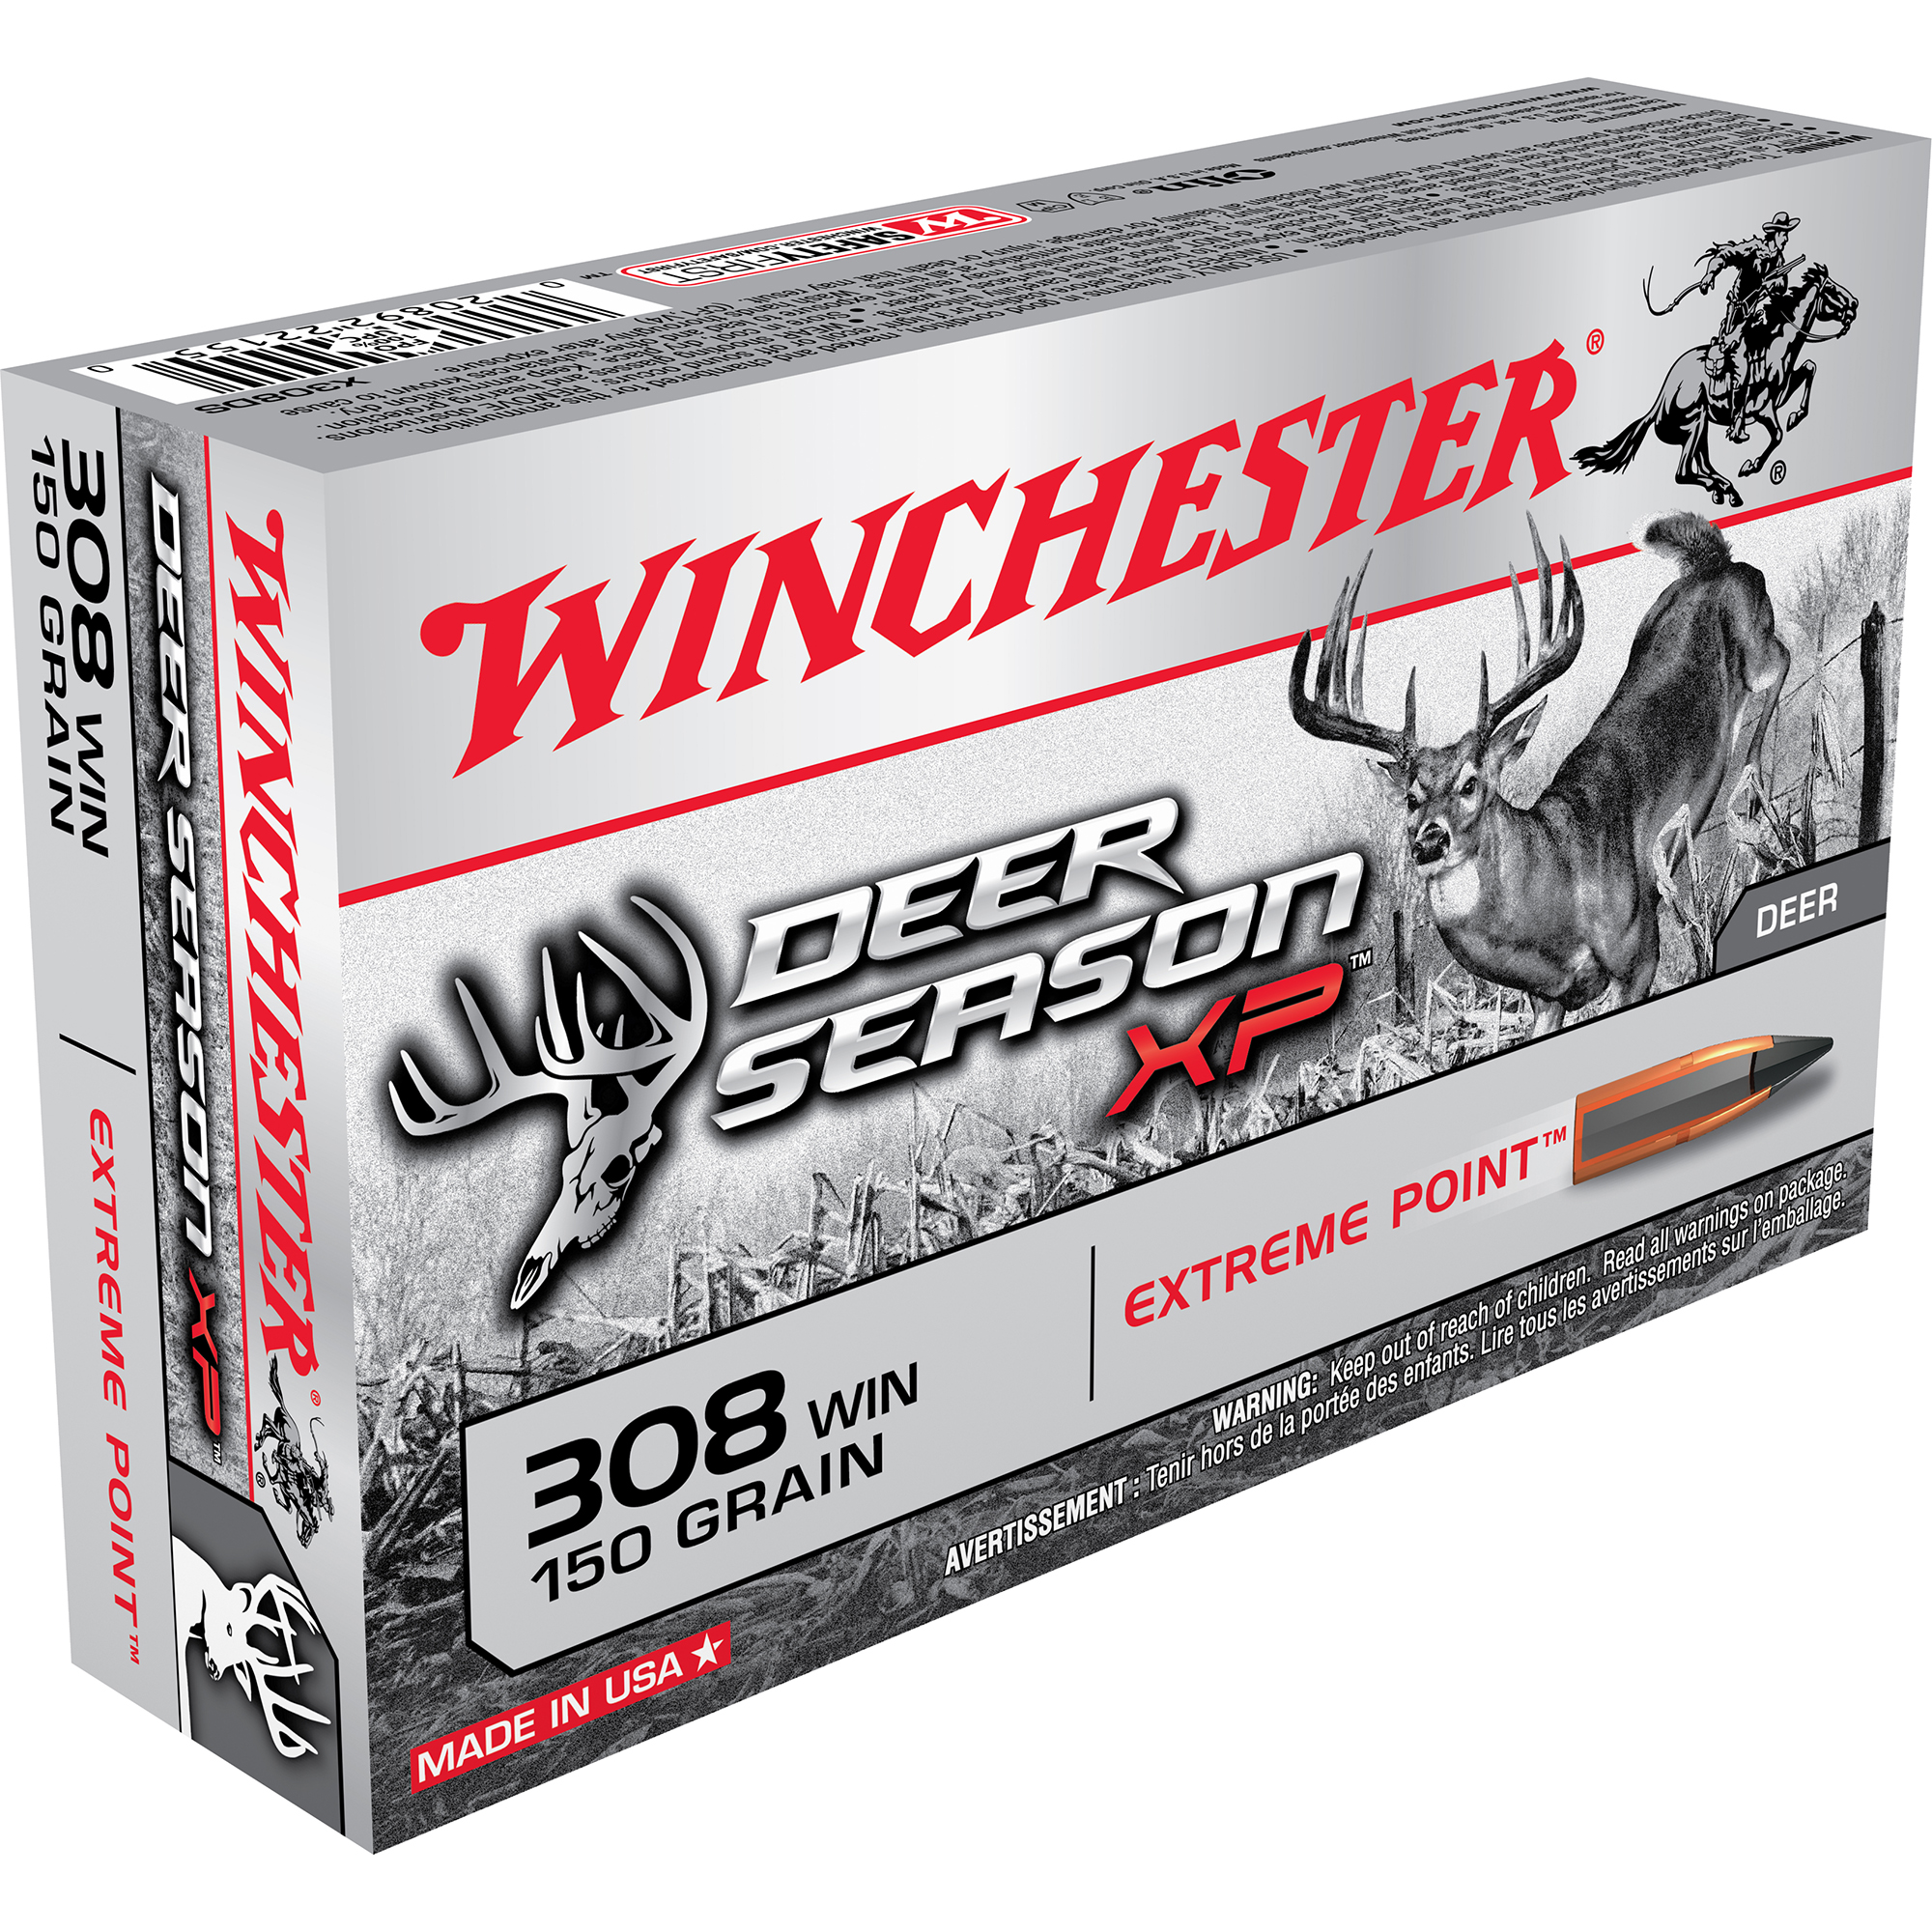 Winchester Deer Season XP Rifle Ammo, .308 Win, 150-gr, Extreme Point